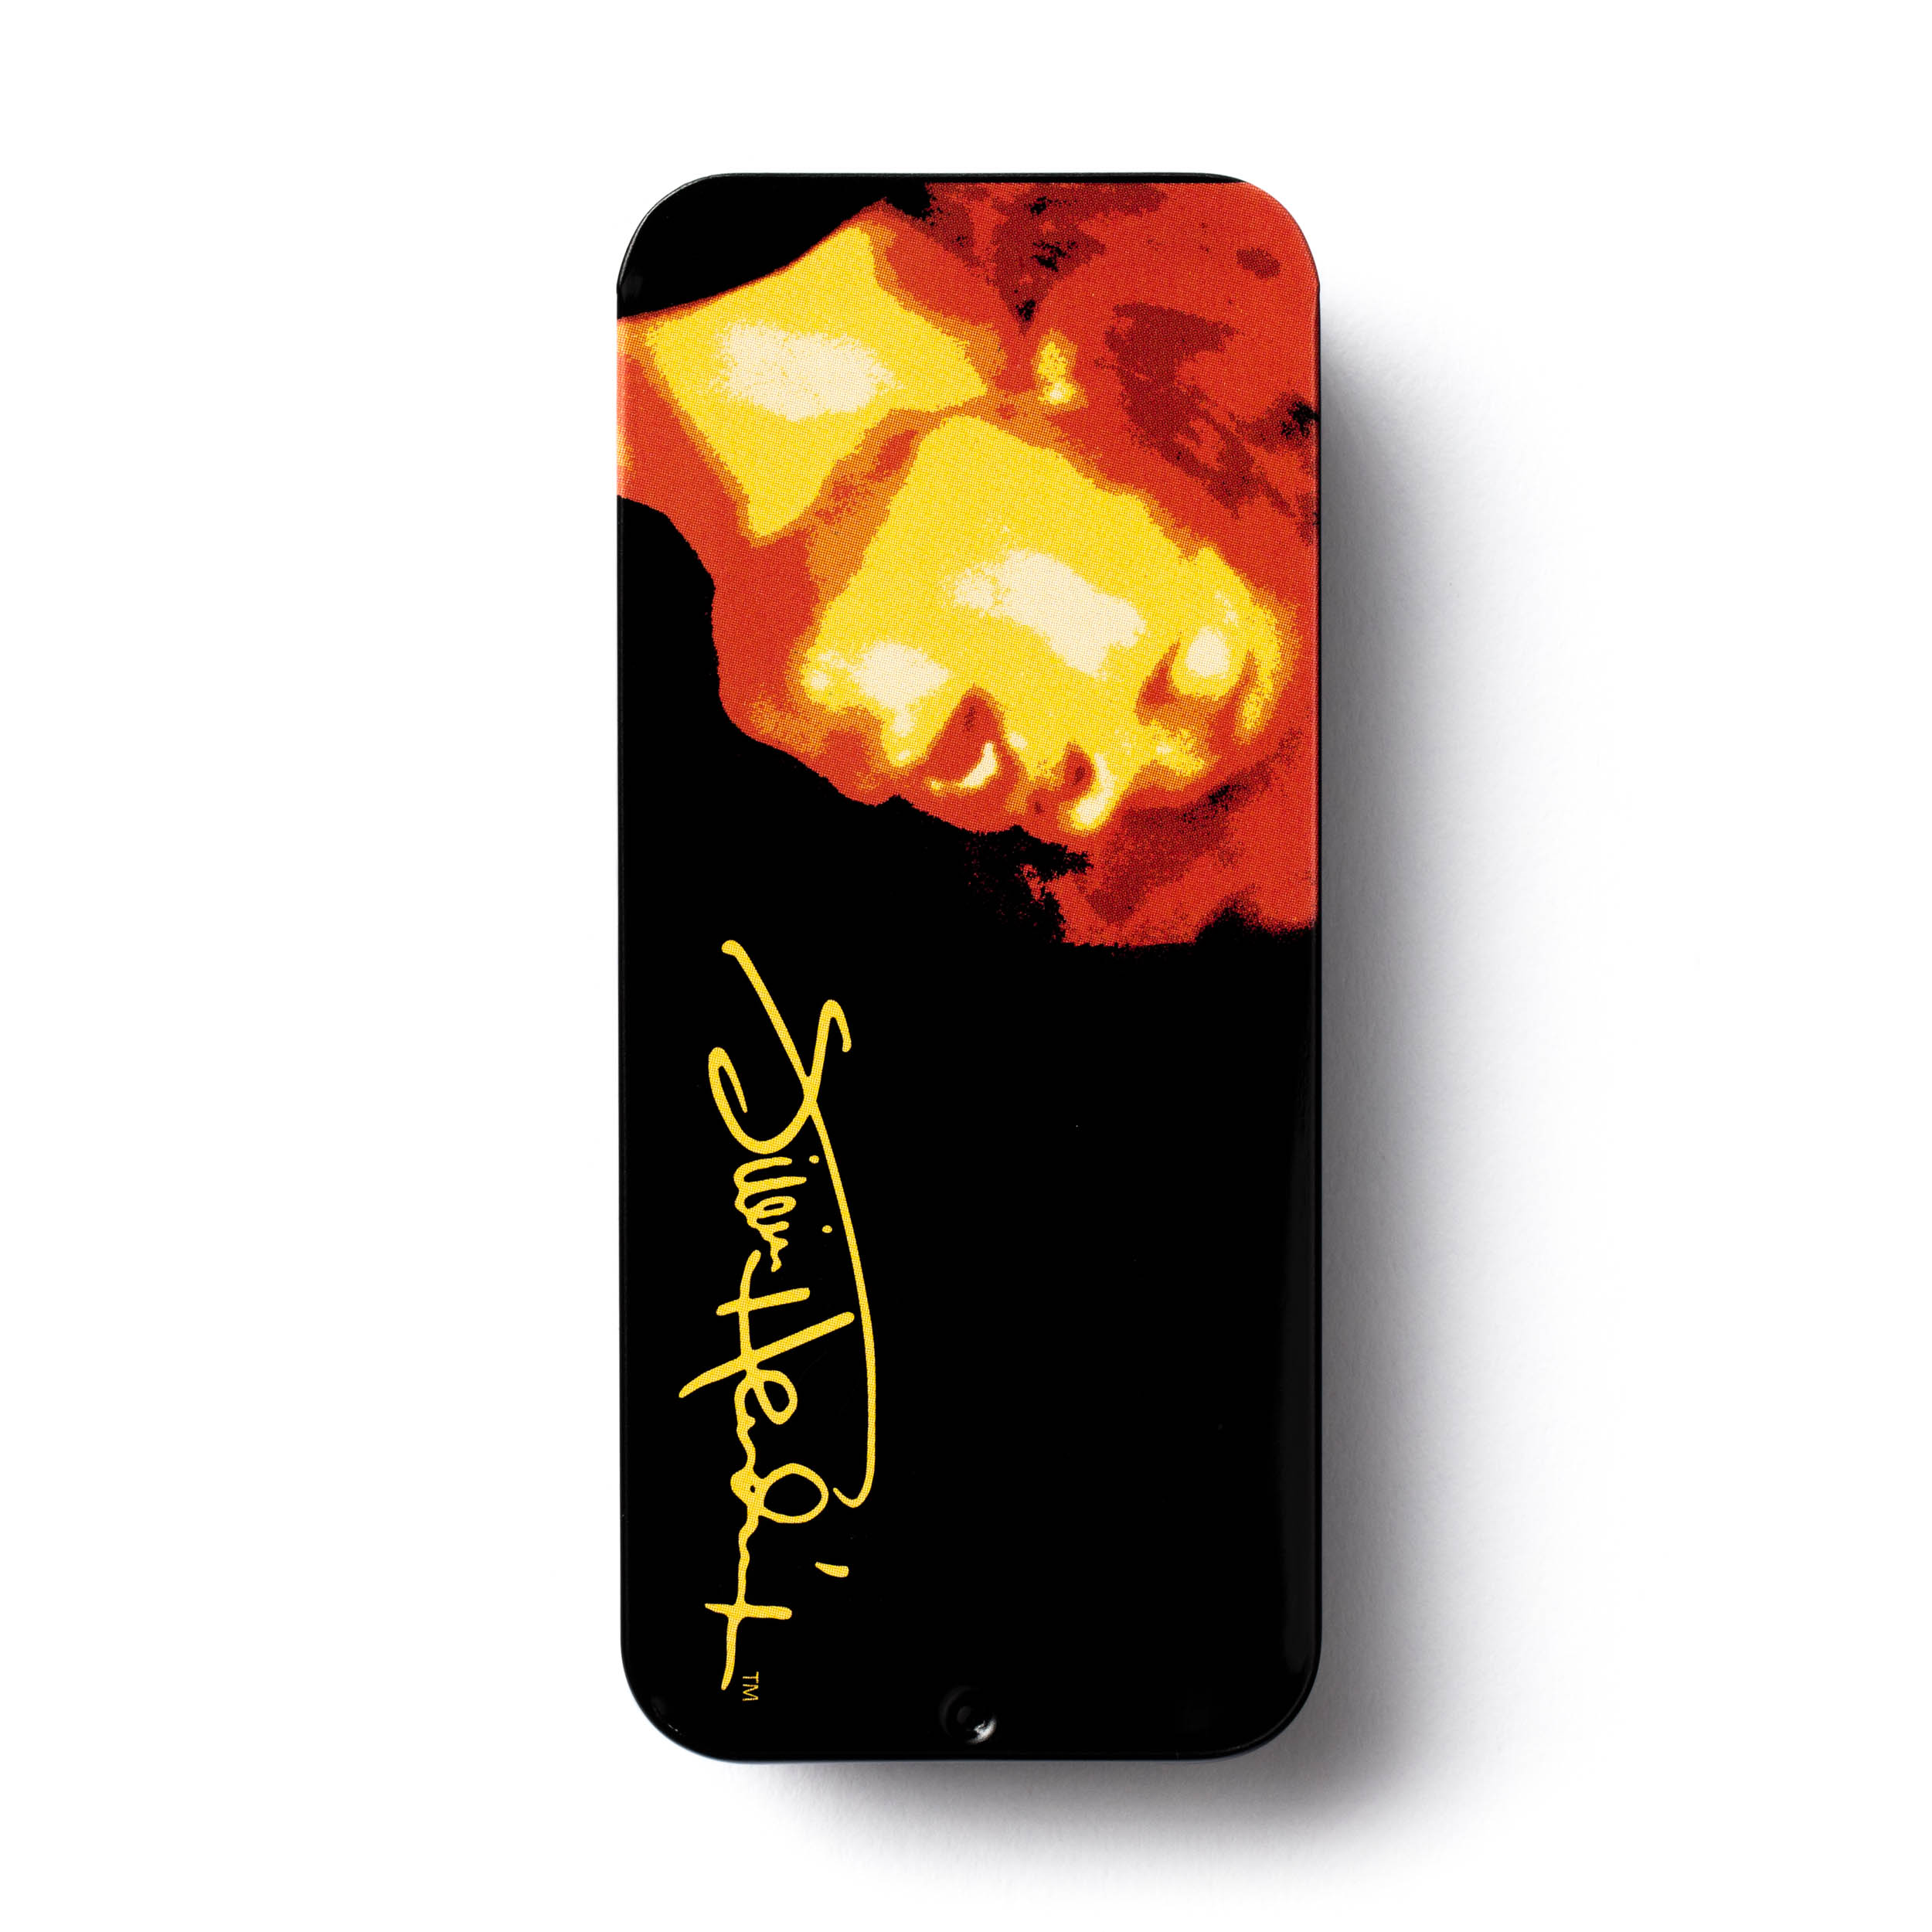 Jimi Hendrix™ Electric Ladyland Pick Tin